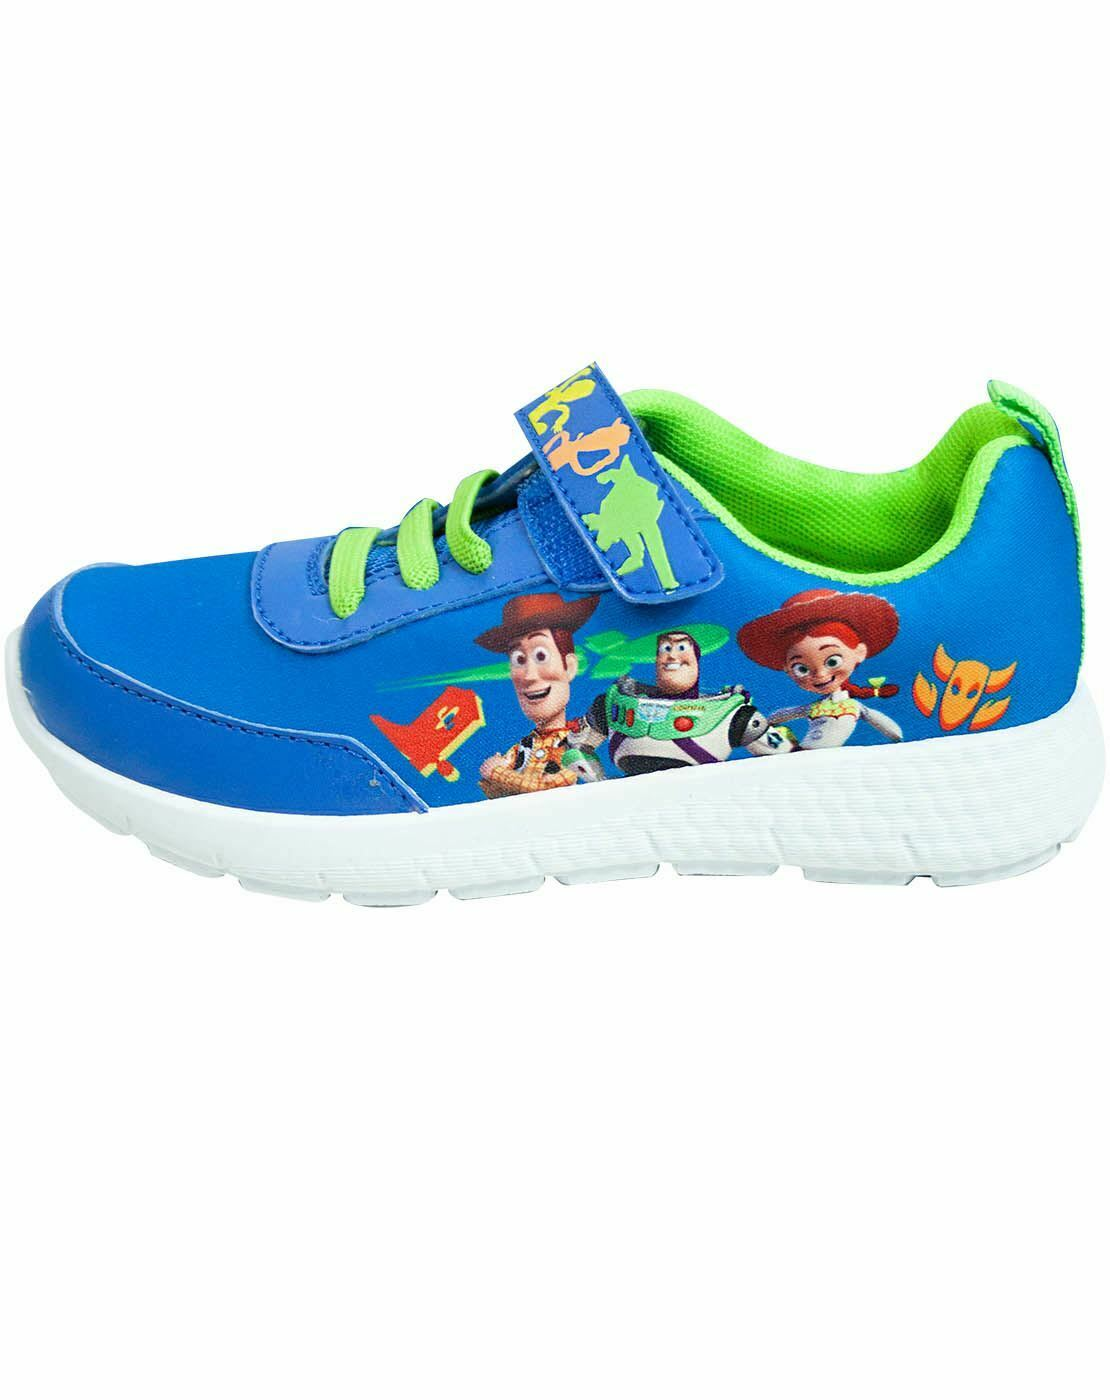 Toy Story 4 Woody Buzz Jessie Boys Kid/'s Casual Trainers Shoes